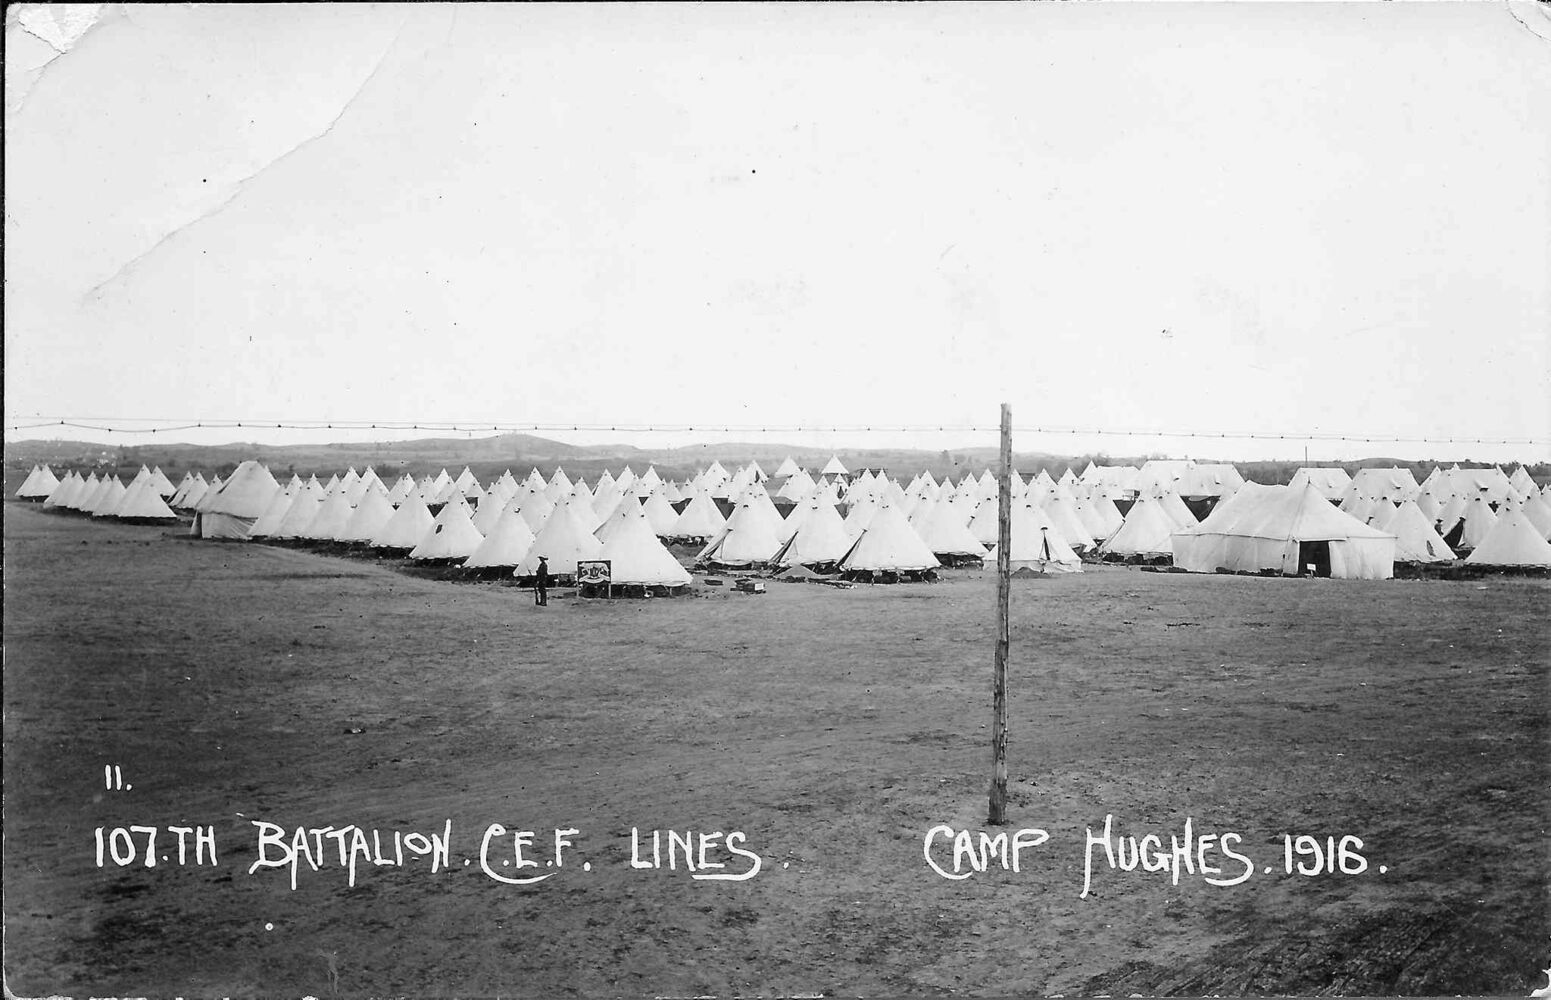 Soldiers' tents at Camp Hughes, 1916.  (THE MANITOBA WWI MUSEUM, PILOT MOUND)